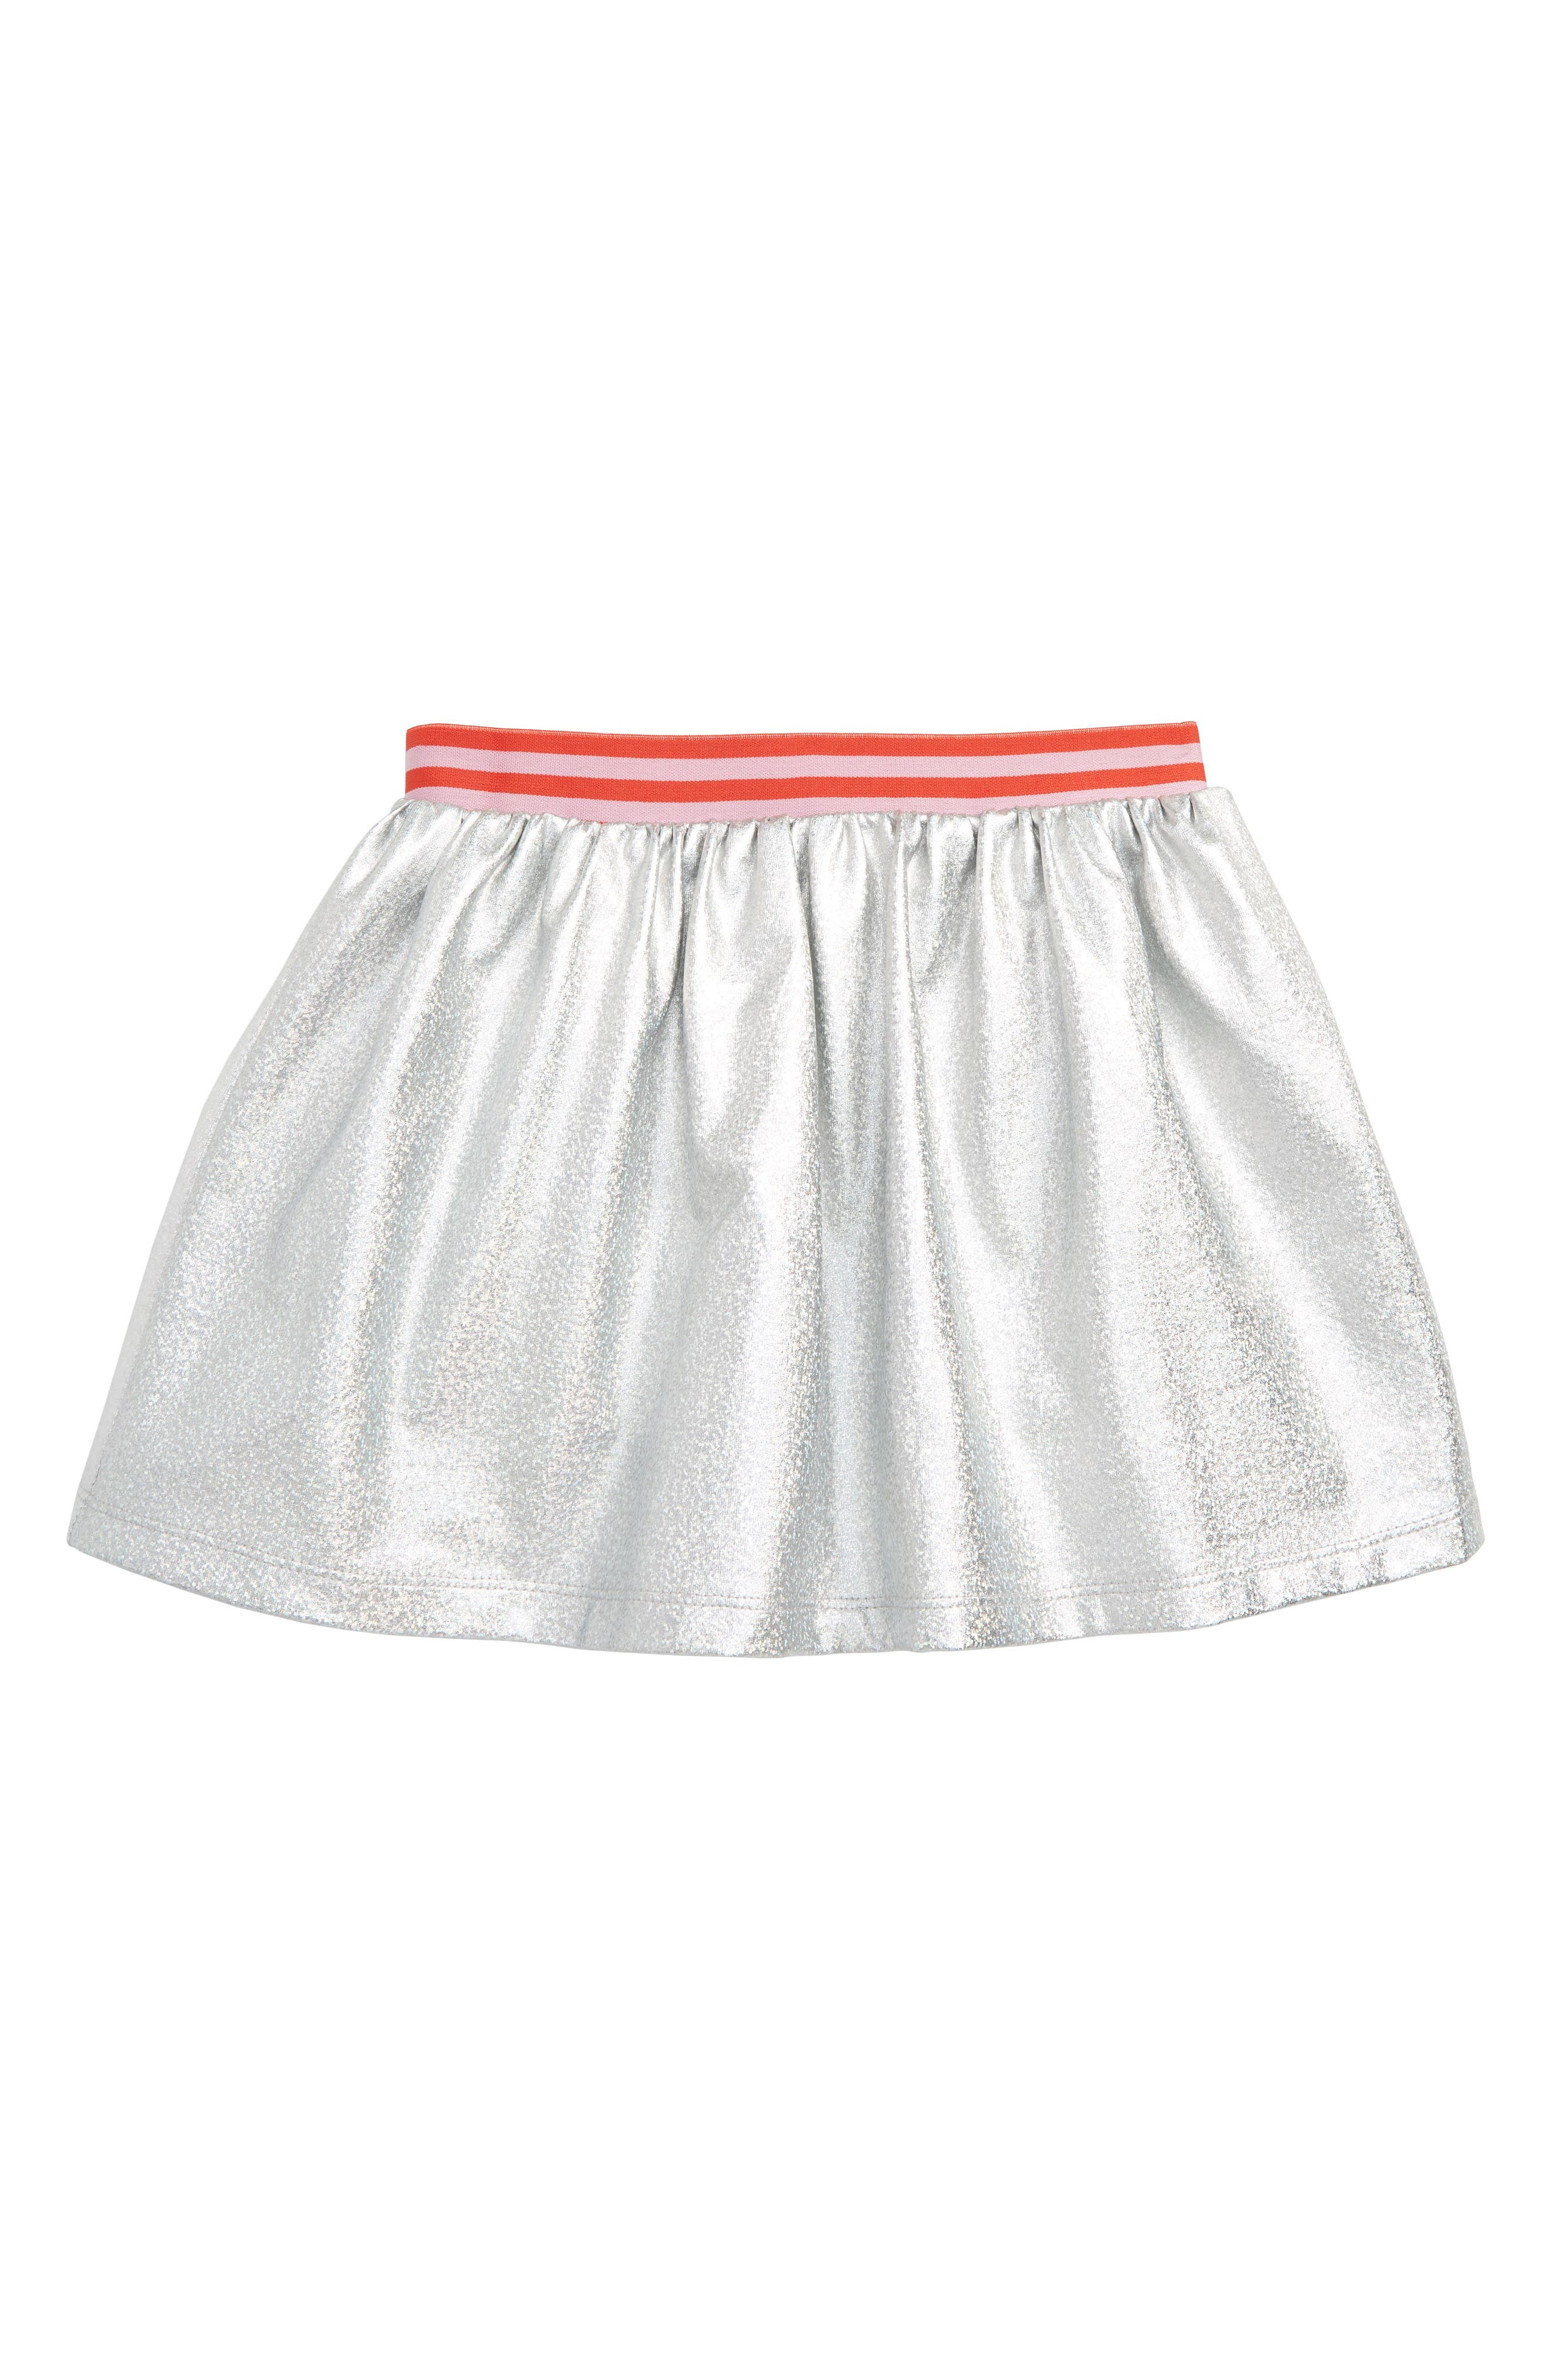 Boden Metallic Skirt, Main, color, SLV IRIDESCENT SILVER